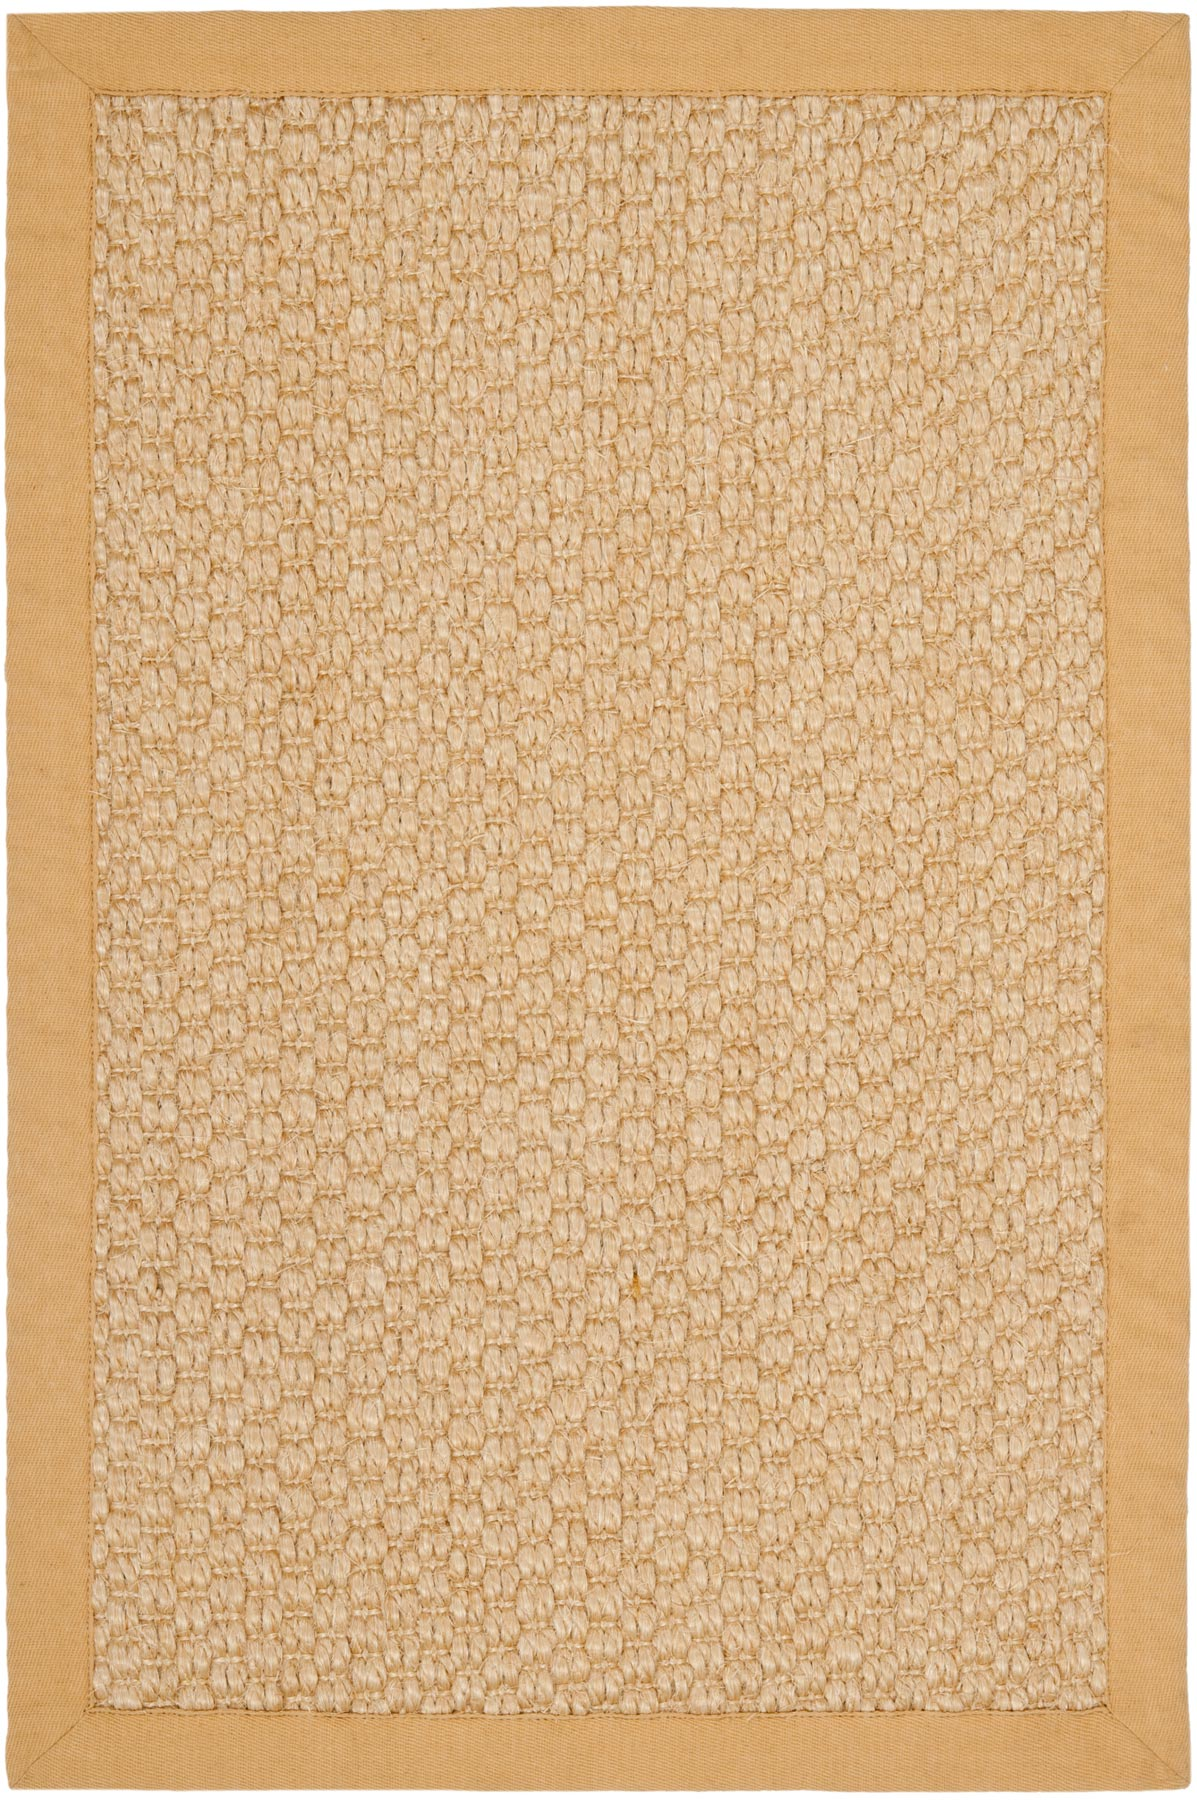 Rug Nf525f Natural Fiber Area Rugs By Safavieh